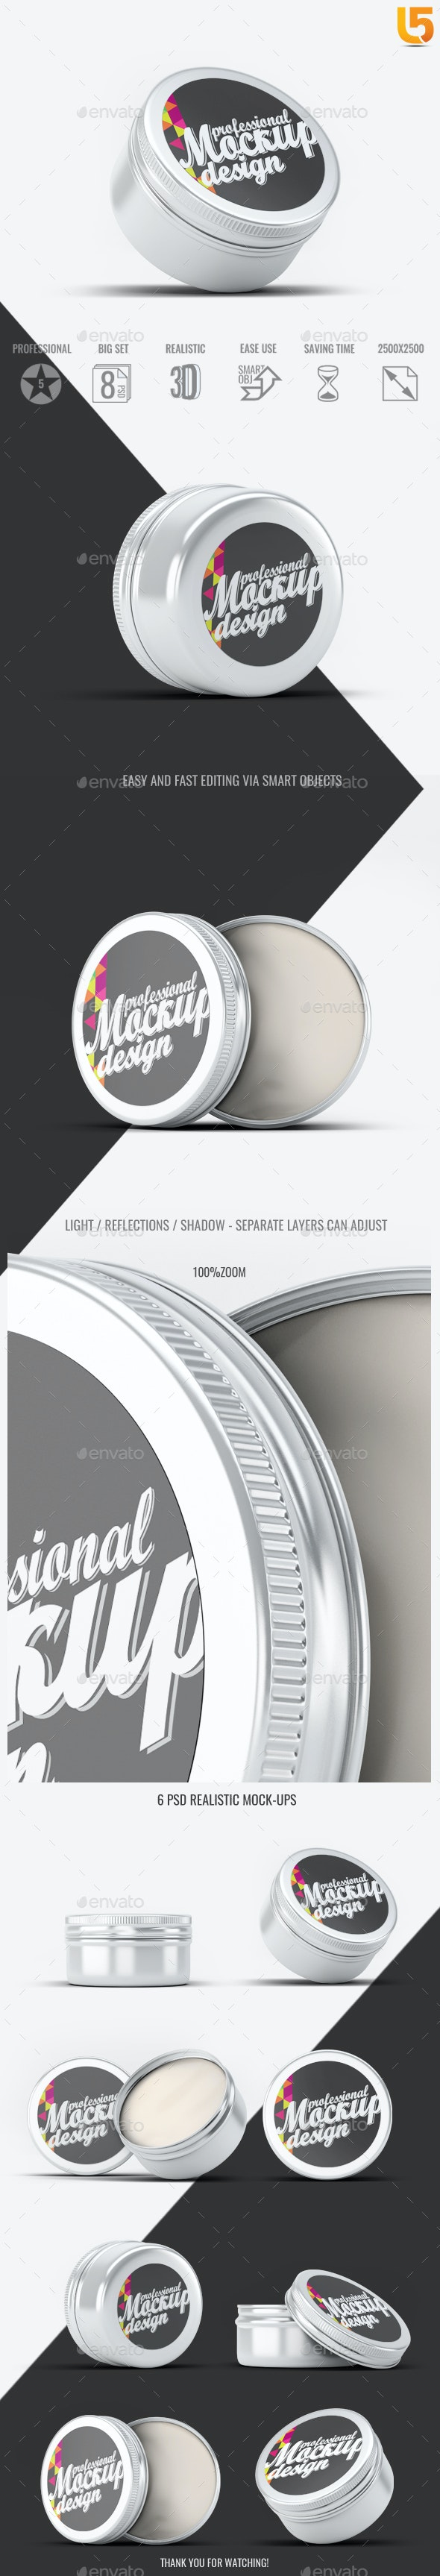 Round Tin Can Mock-Up - Beauty Packaging